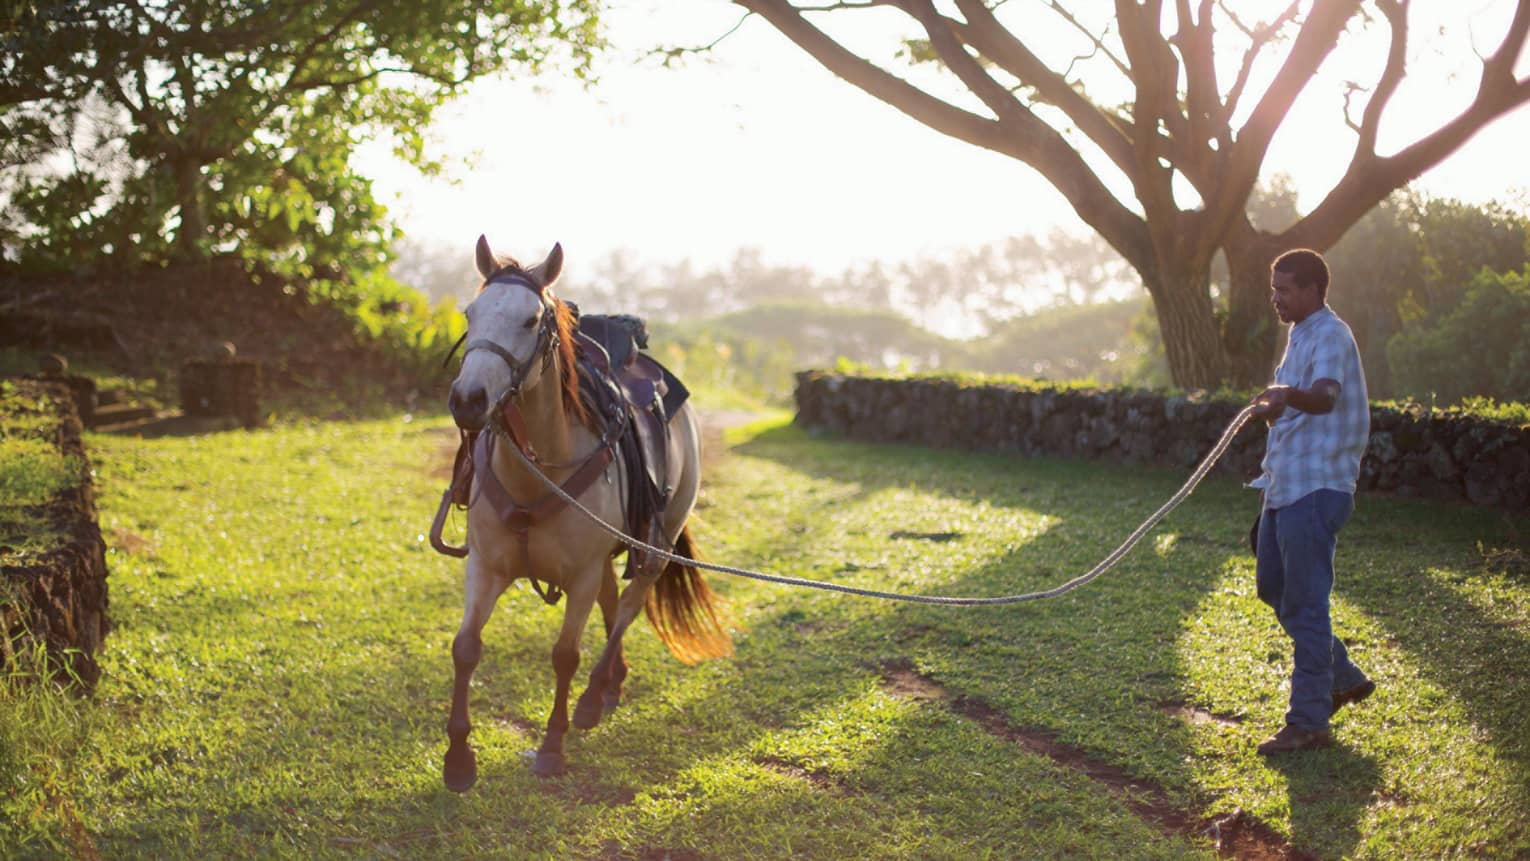 A saddled horse, ready to be ridden at Hana Ranch